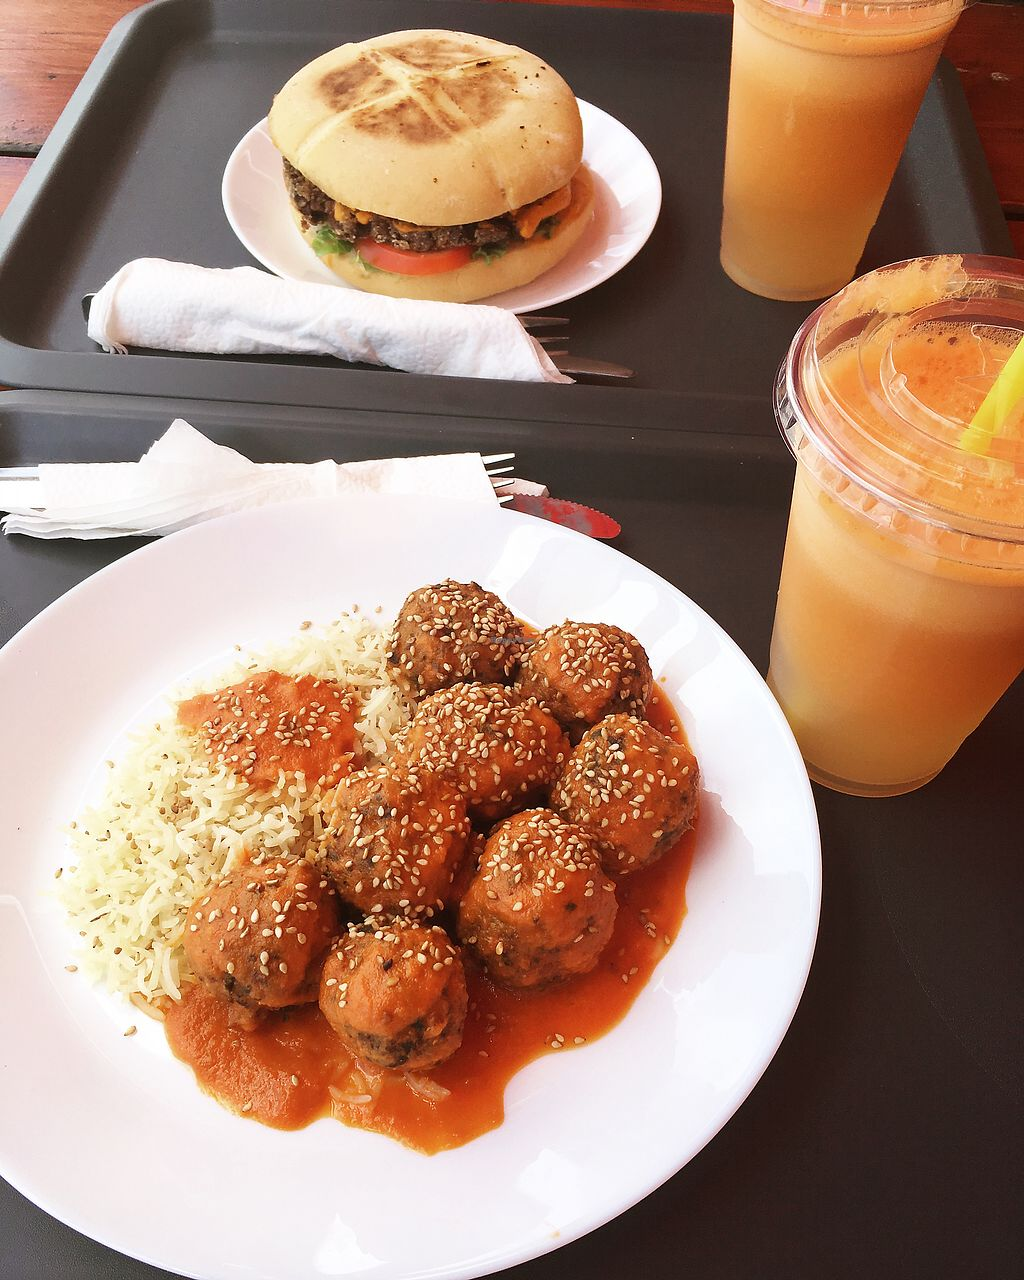 """Photo of K-Vegan  by <a href=""""/members/profile/Halat"""">Halat</a> <br/>lentil burger and """"meatballs"""" <br/> July 21, 2017  - <a href='/contact/abuse/image/52654/282850'>Report</a>"""